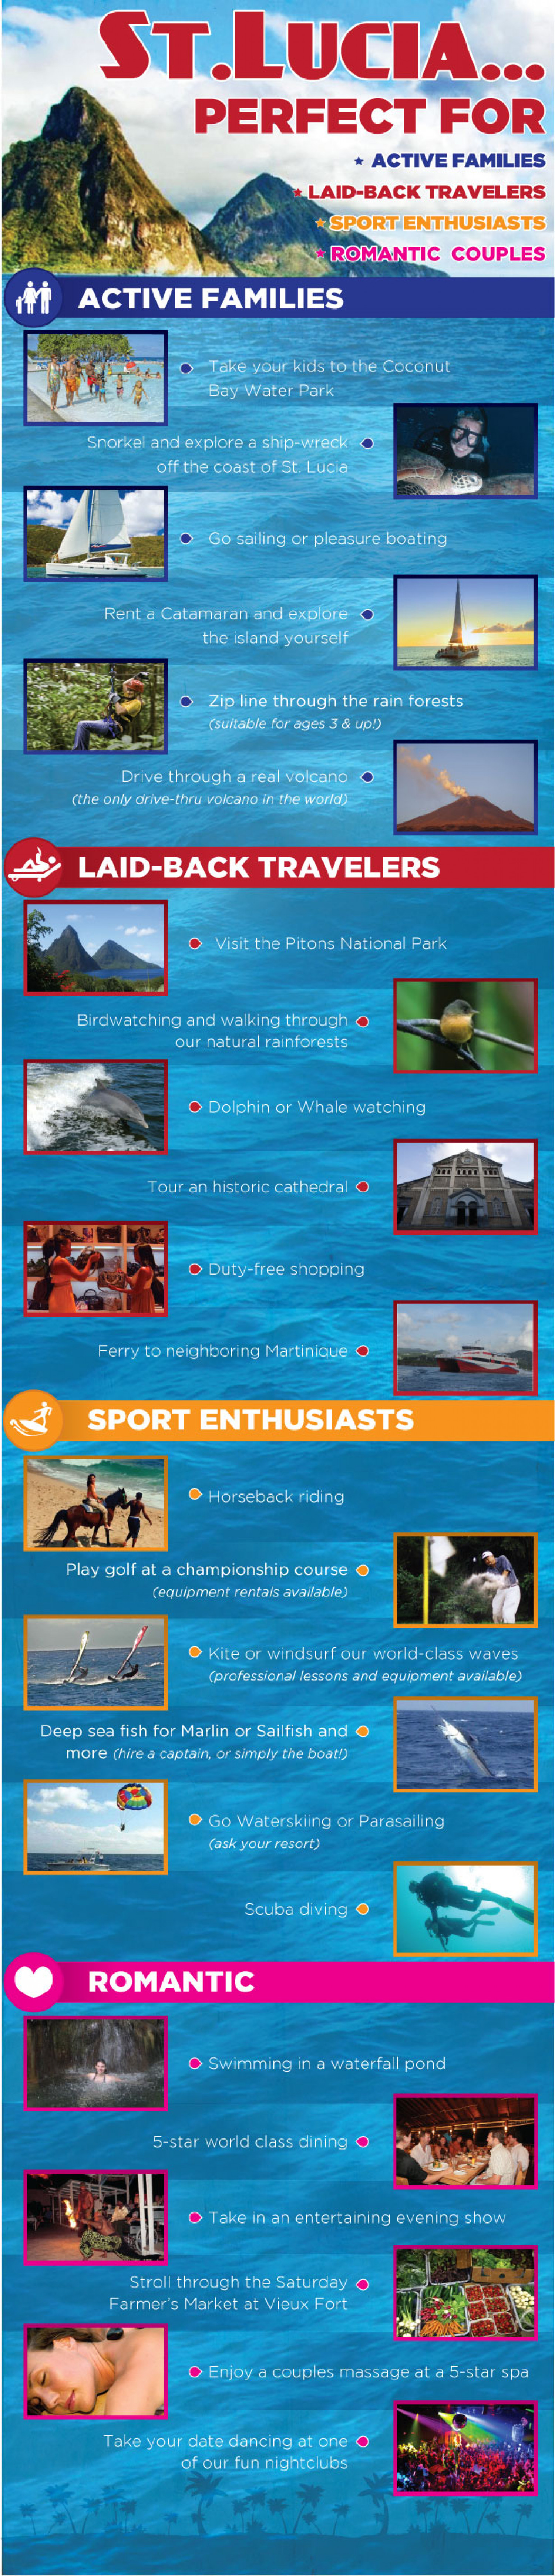 Things to Do in St Lucia Infographic